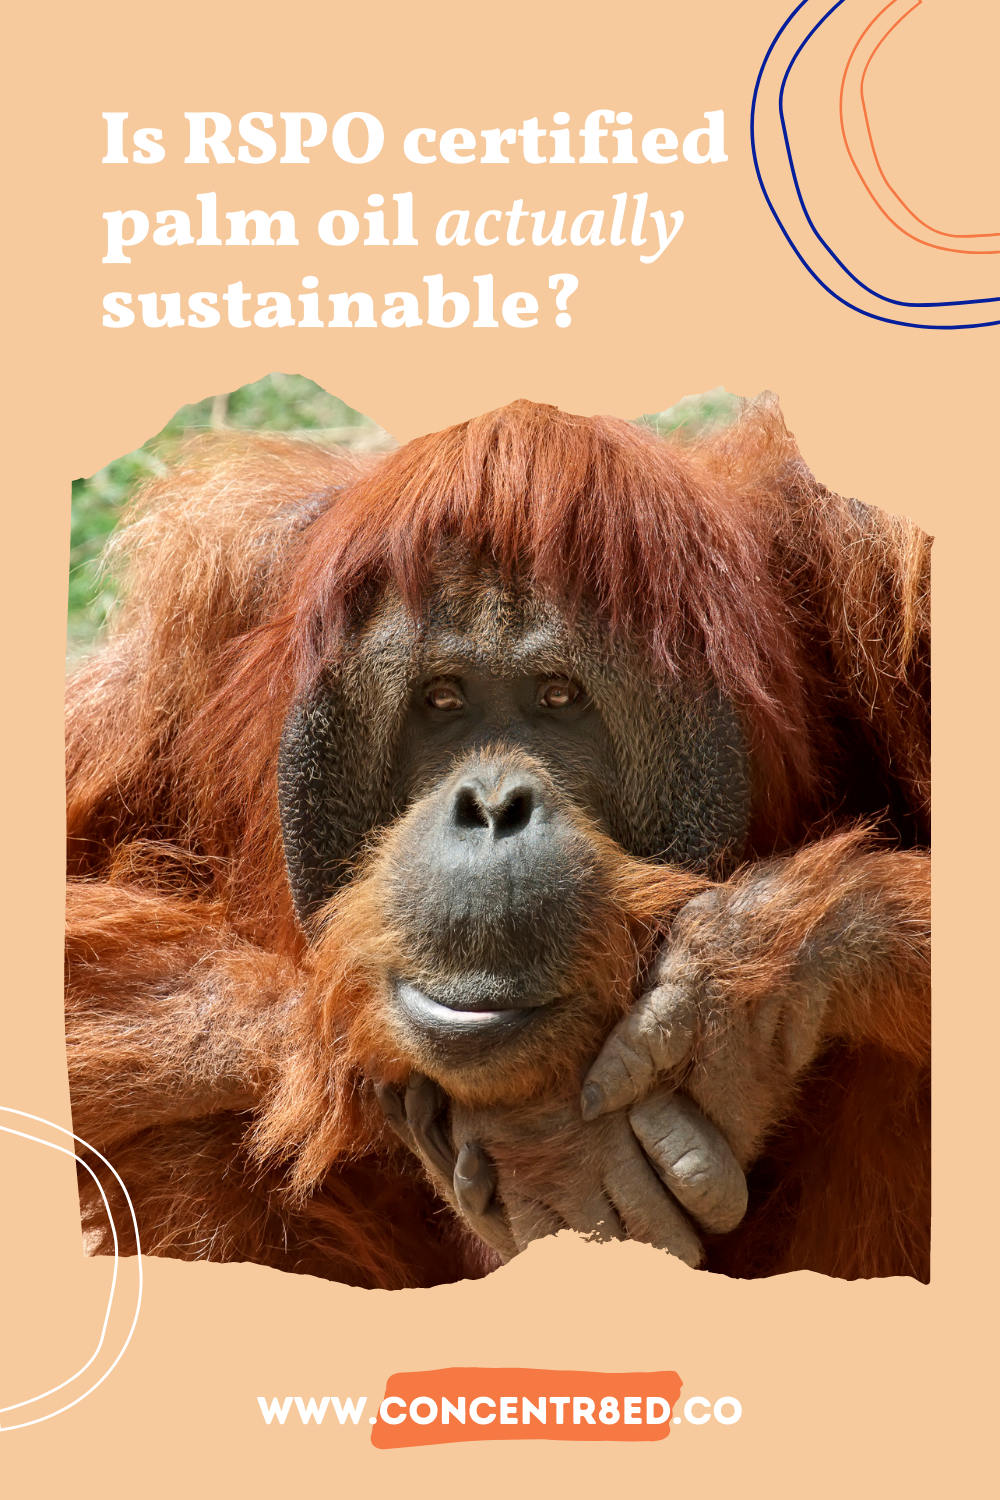 What is the RSPO and is RSPO certified palm oil actually sustainable? Palm oil free